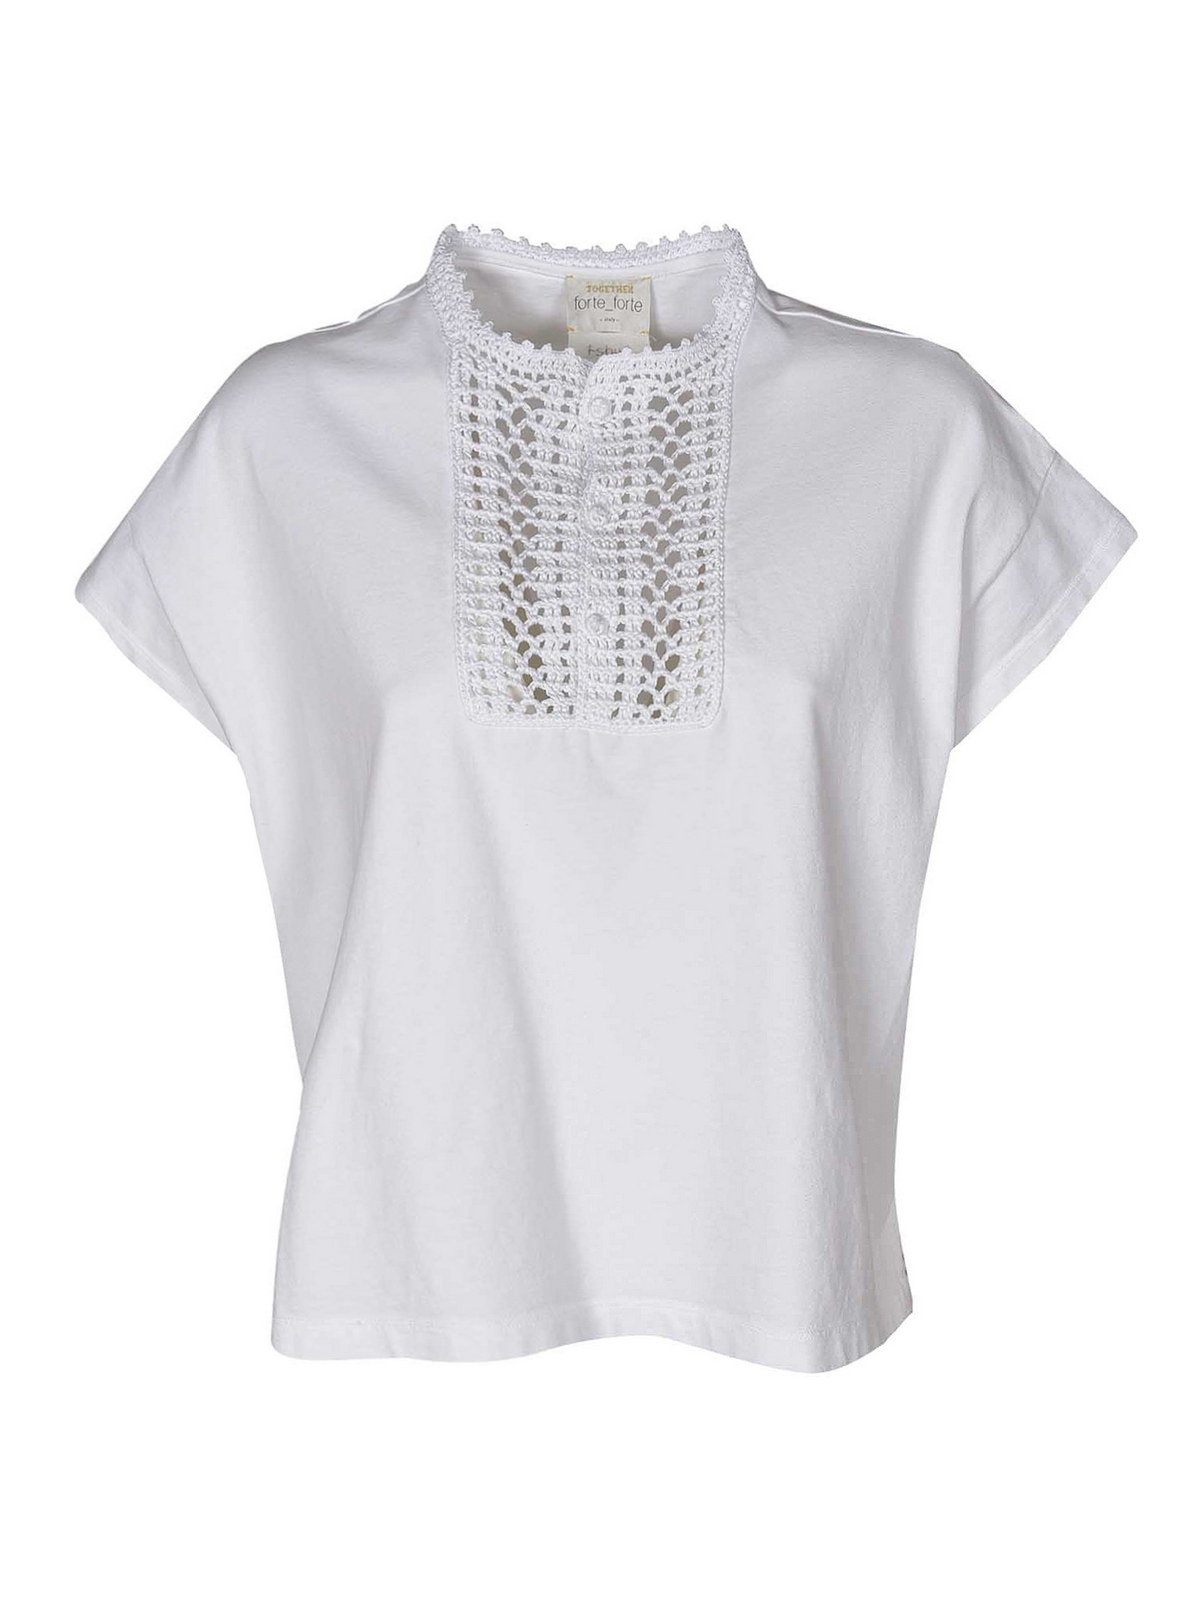 Forte Forte JERSEY TOP